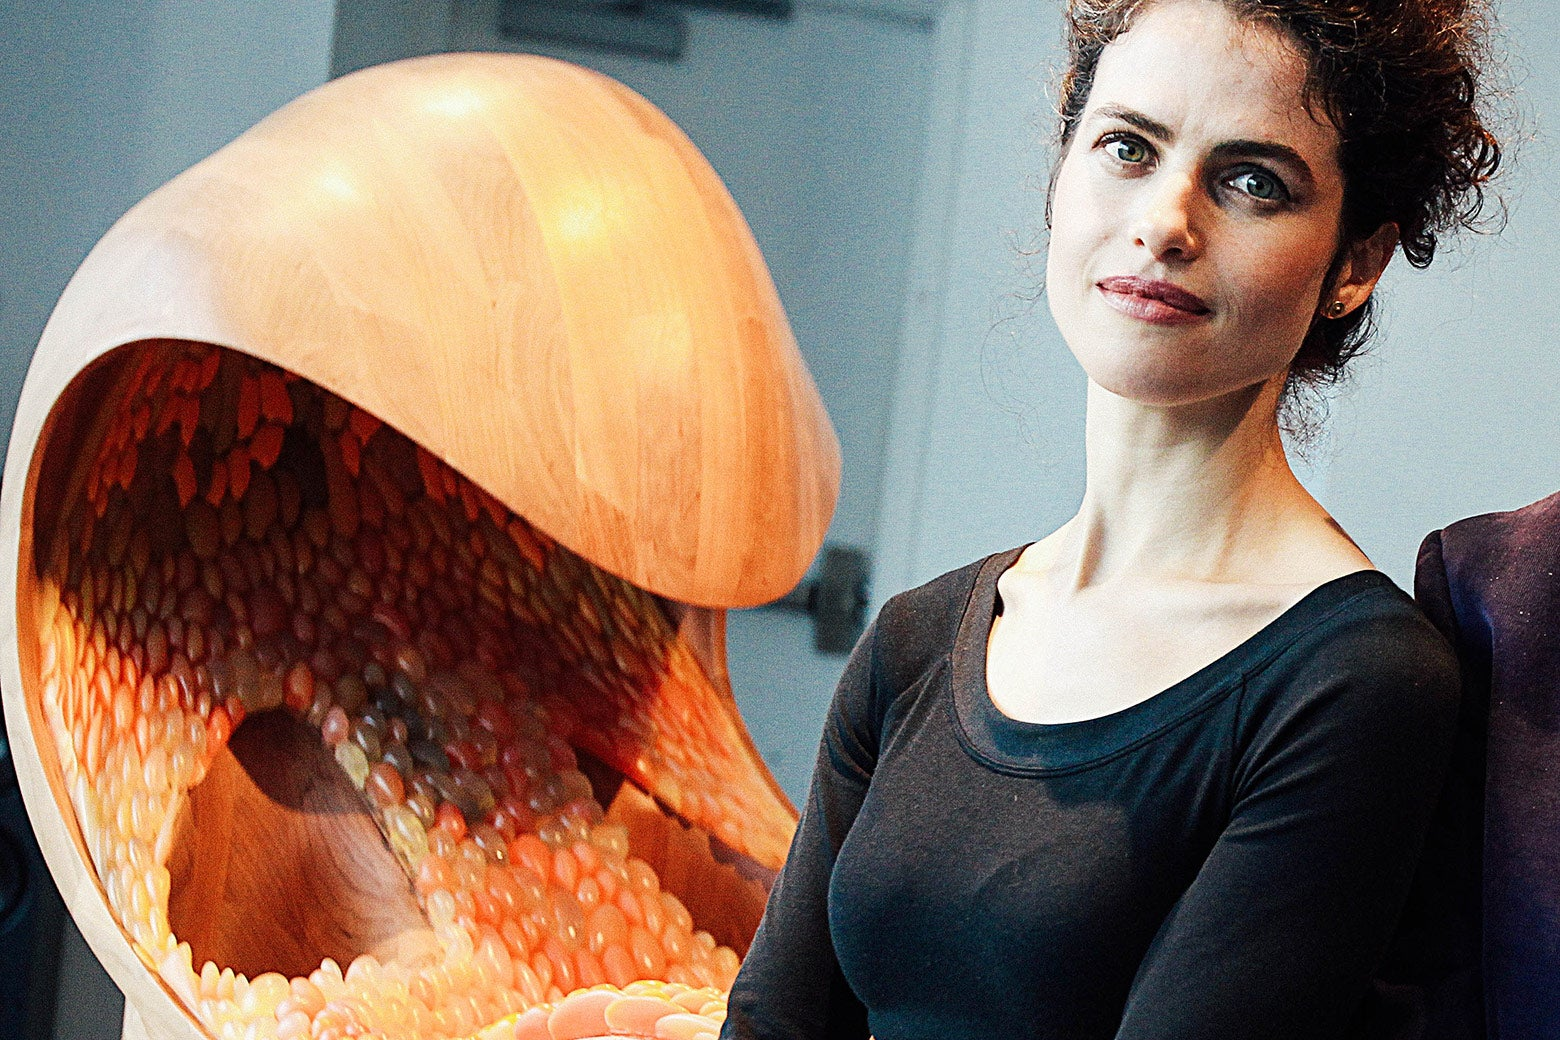 Designer/artist/architect Neri Oxman in front of her piece.